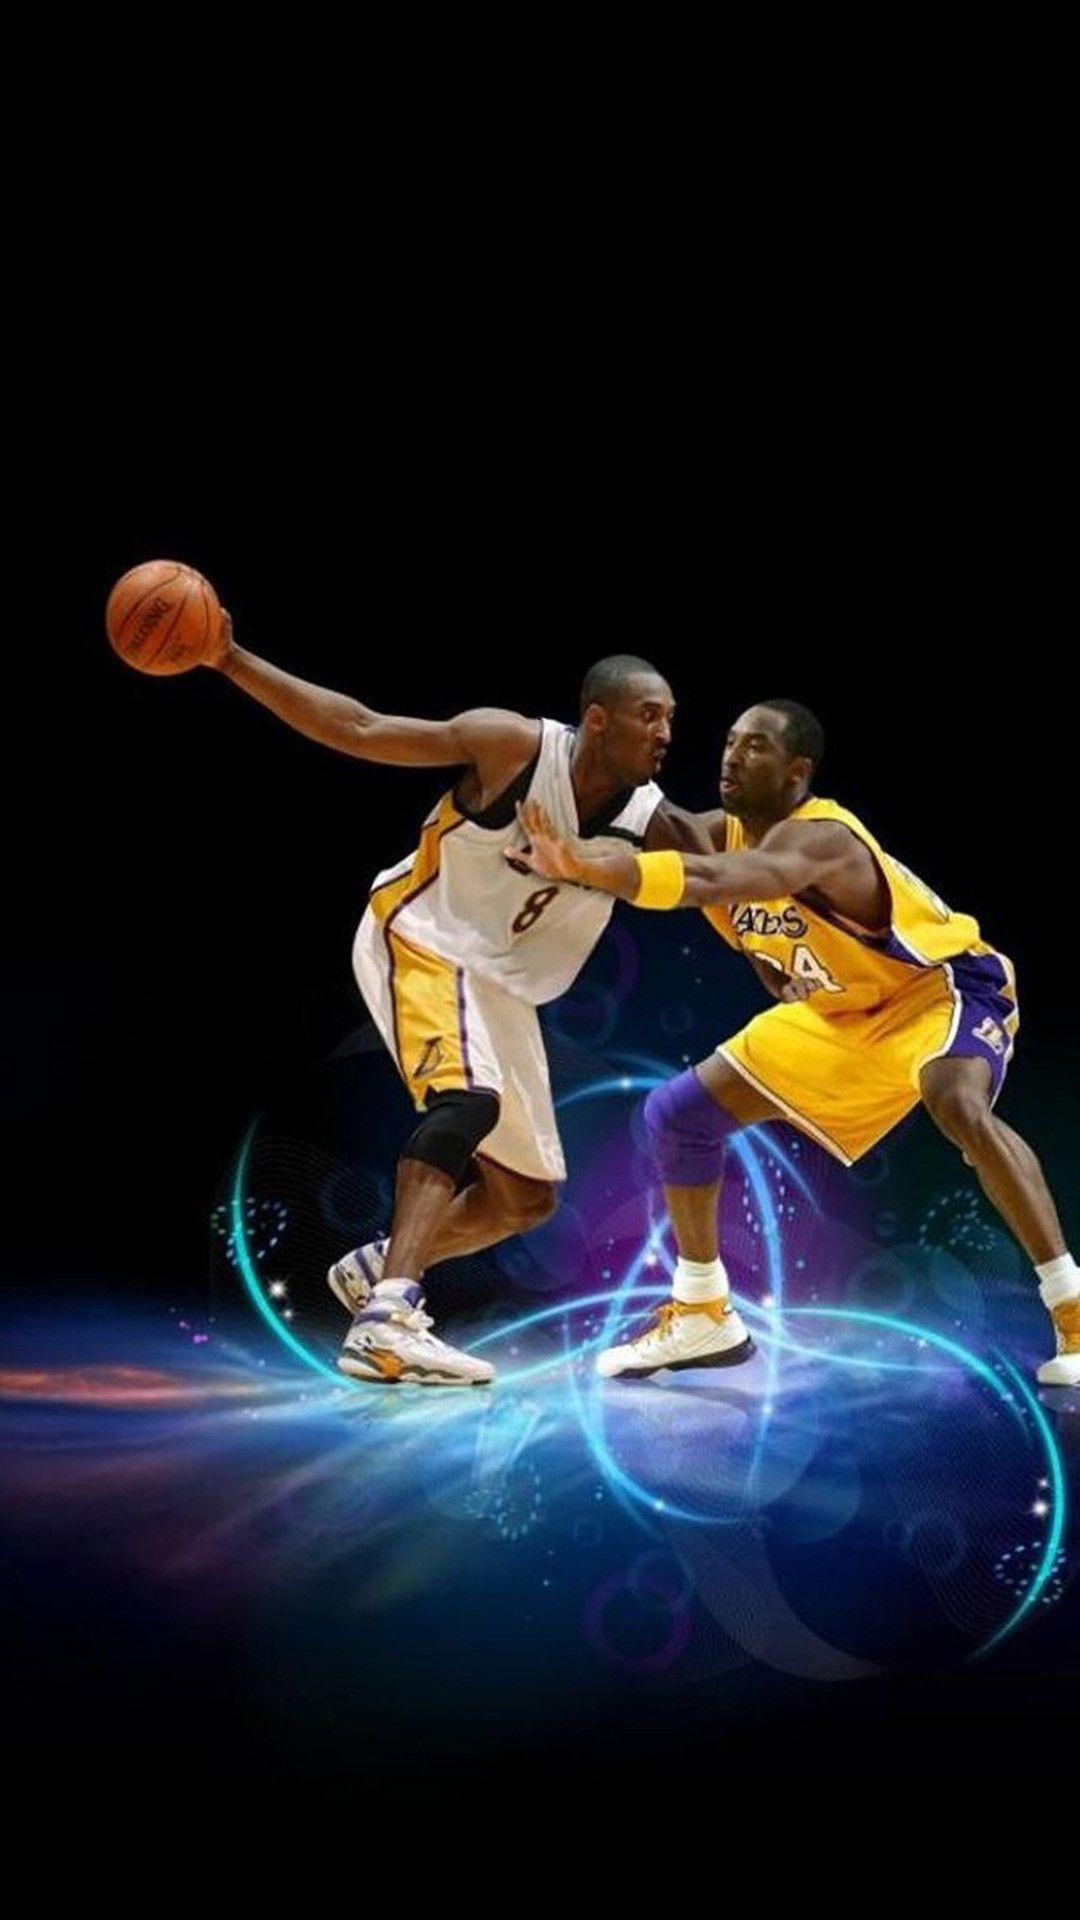 Galaxy Cool Nba Wallpapers